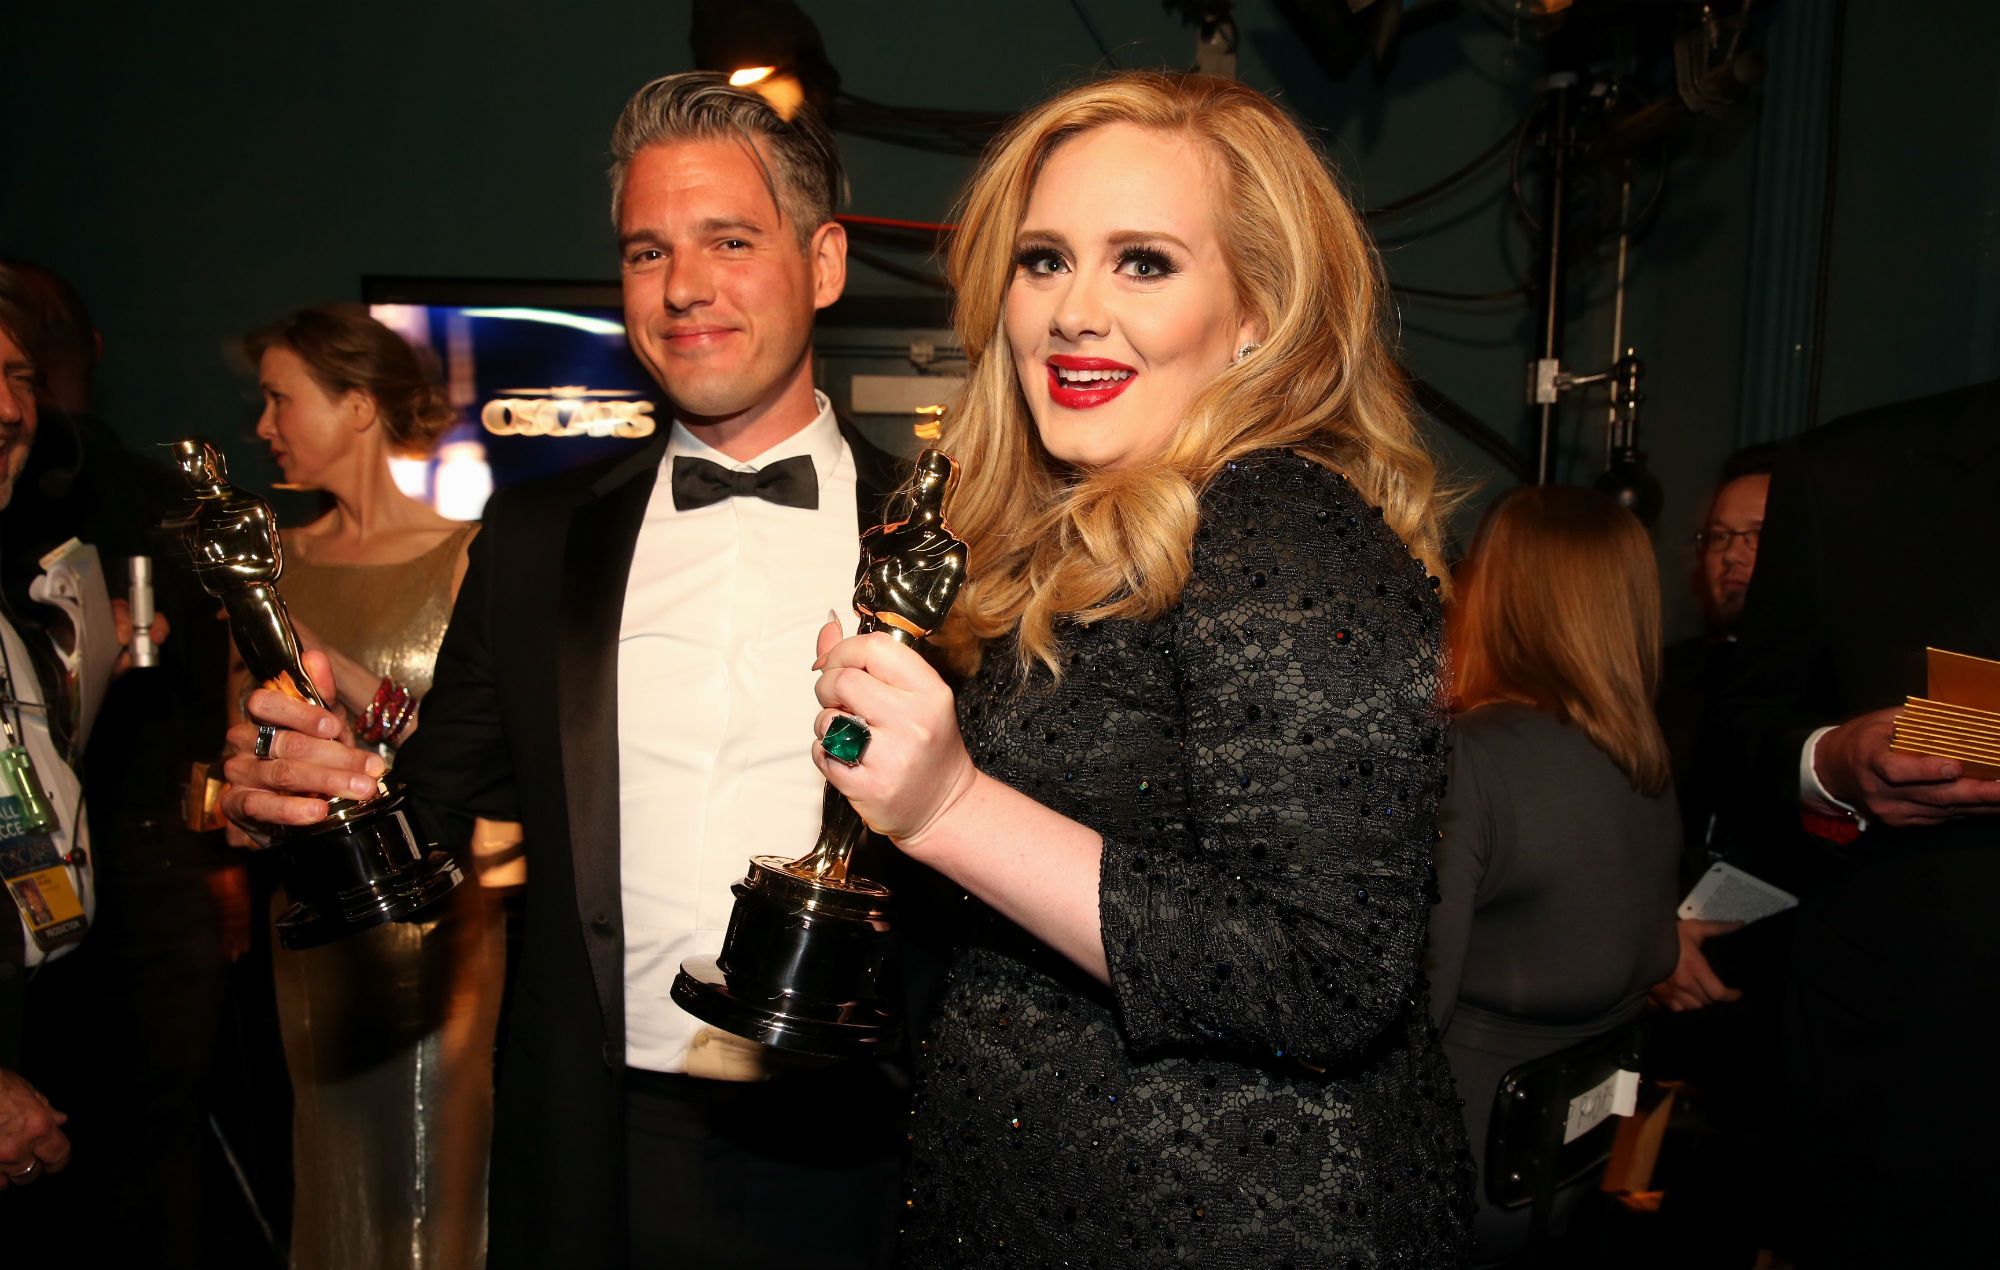 Paul Epworth opens up about working with Adele in new interview